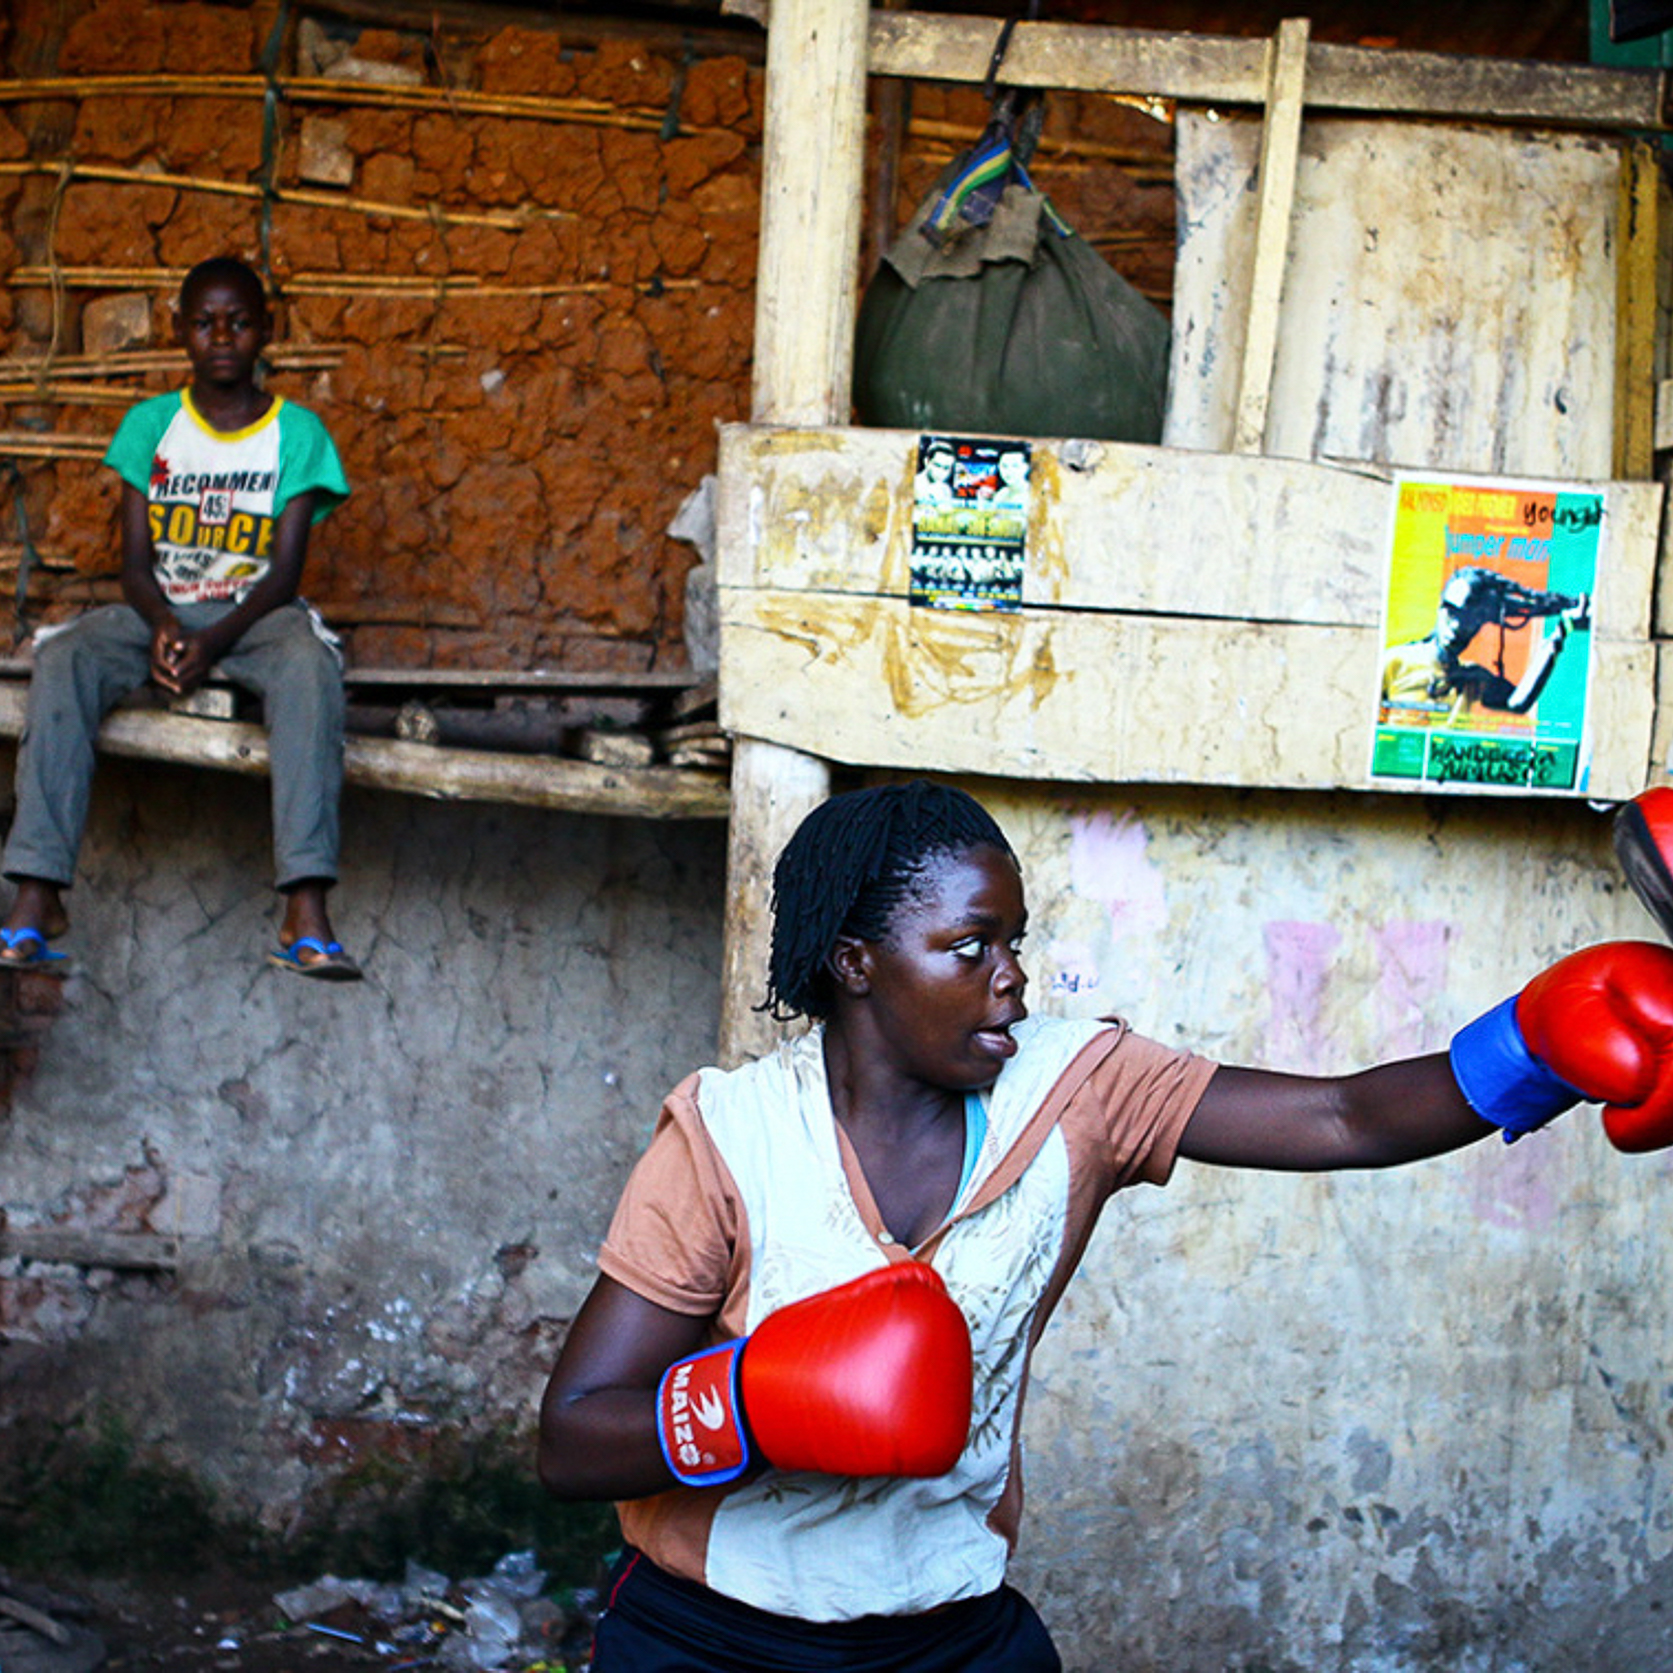 A female boxer trains inside a makeshift gym in Katanga, Kampala, Uganda. @edward_echwalu